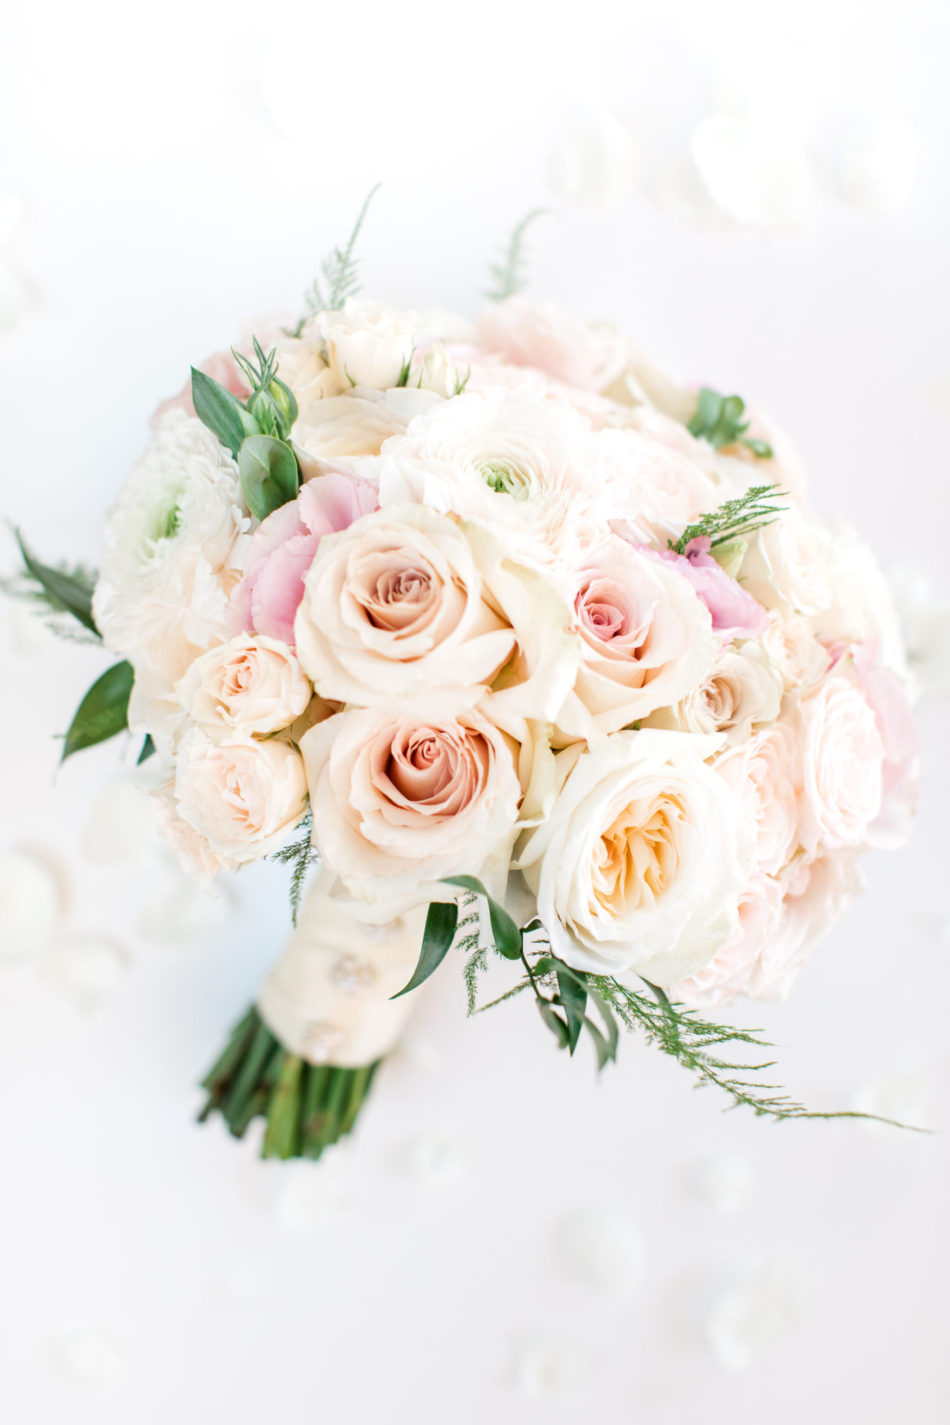 blush bouquet, bridal bouquet, gorgeous floral-filled wedding, floral design, florist, wedding florist, wedding flowers, orange county weddings, orange county wedding florist, orange county florist, orange county floral design, flowers by cina